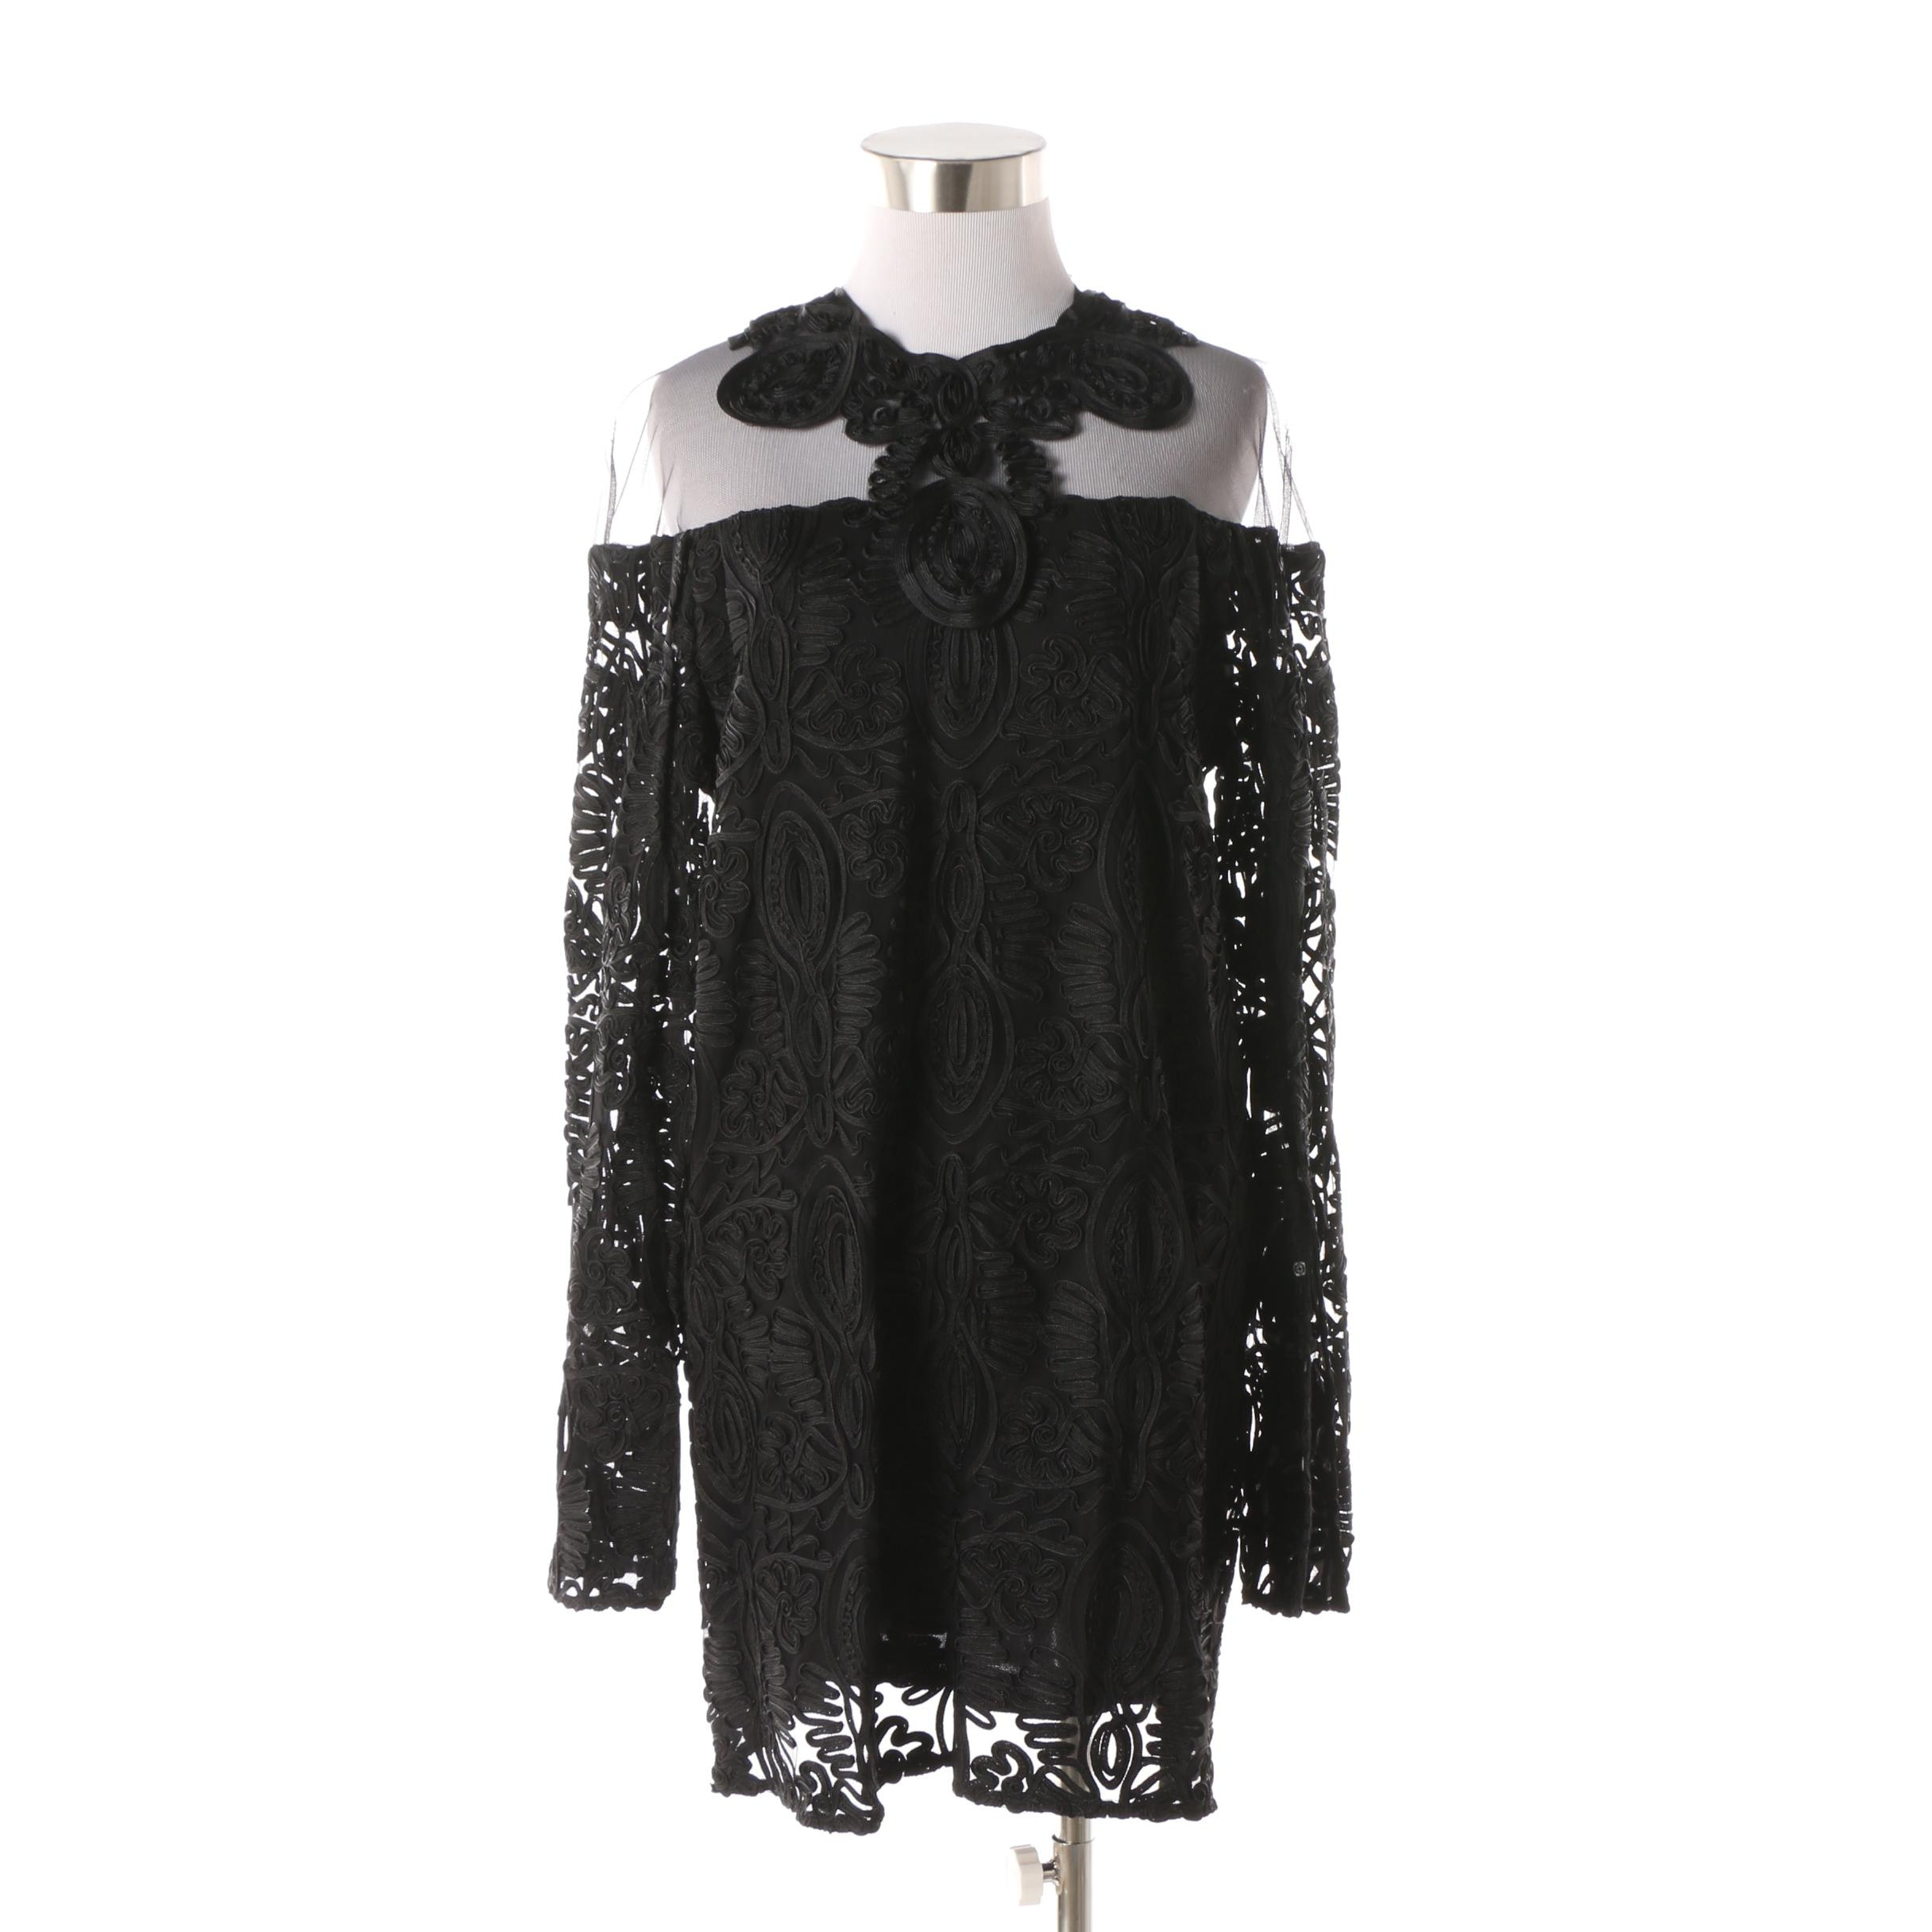 Anne Fontaine Black Mesh Dress with Foliate Soutache Design